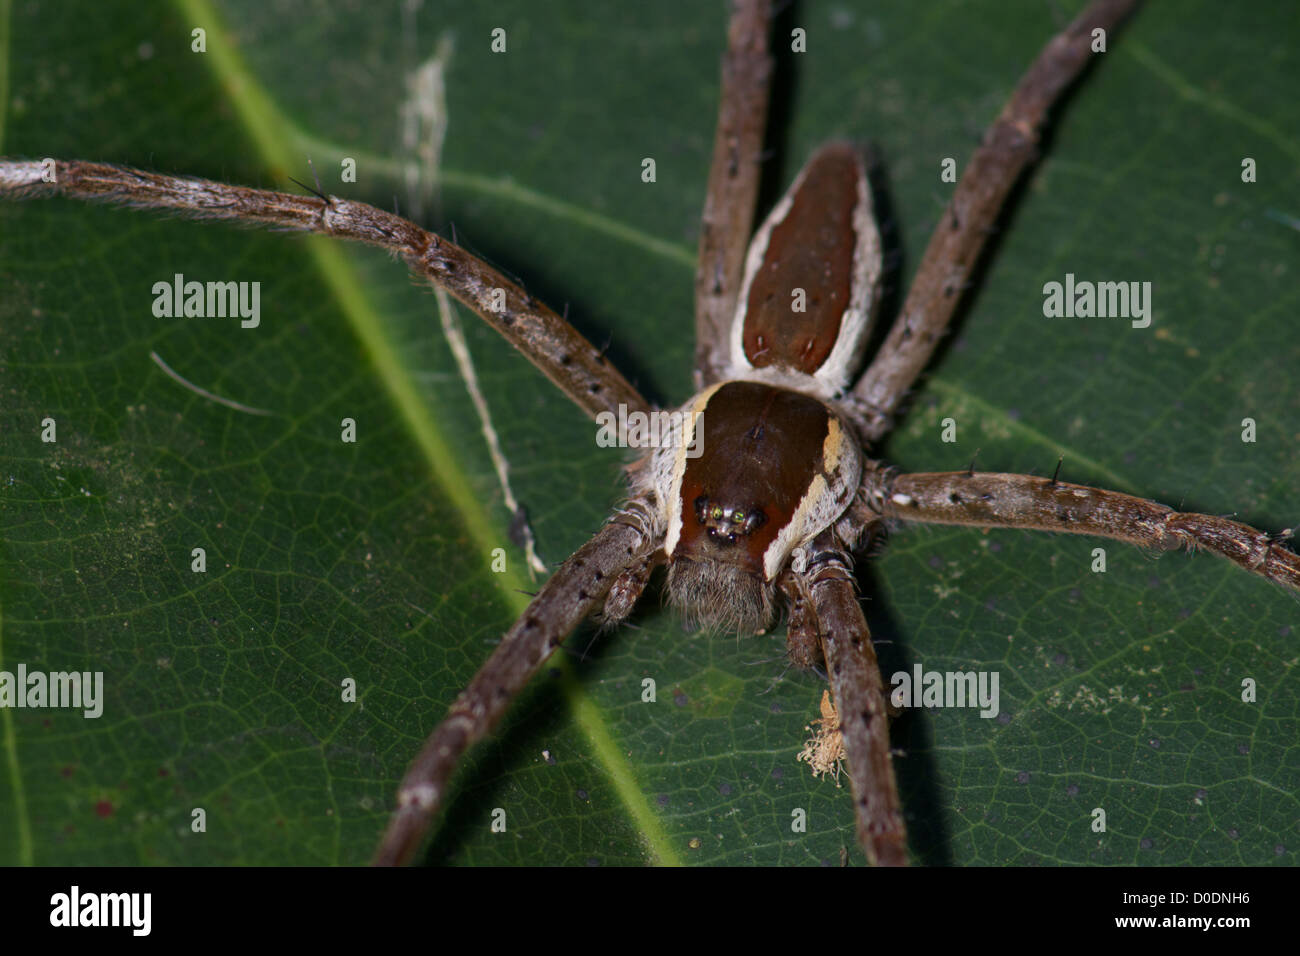 Dolomedes sp, Nursery web spider of the family Pisauridae. - Stock Image